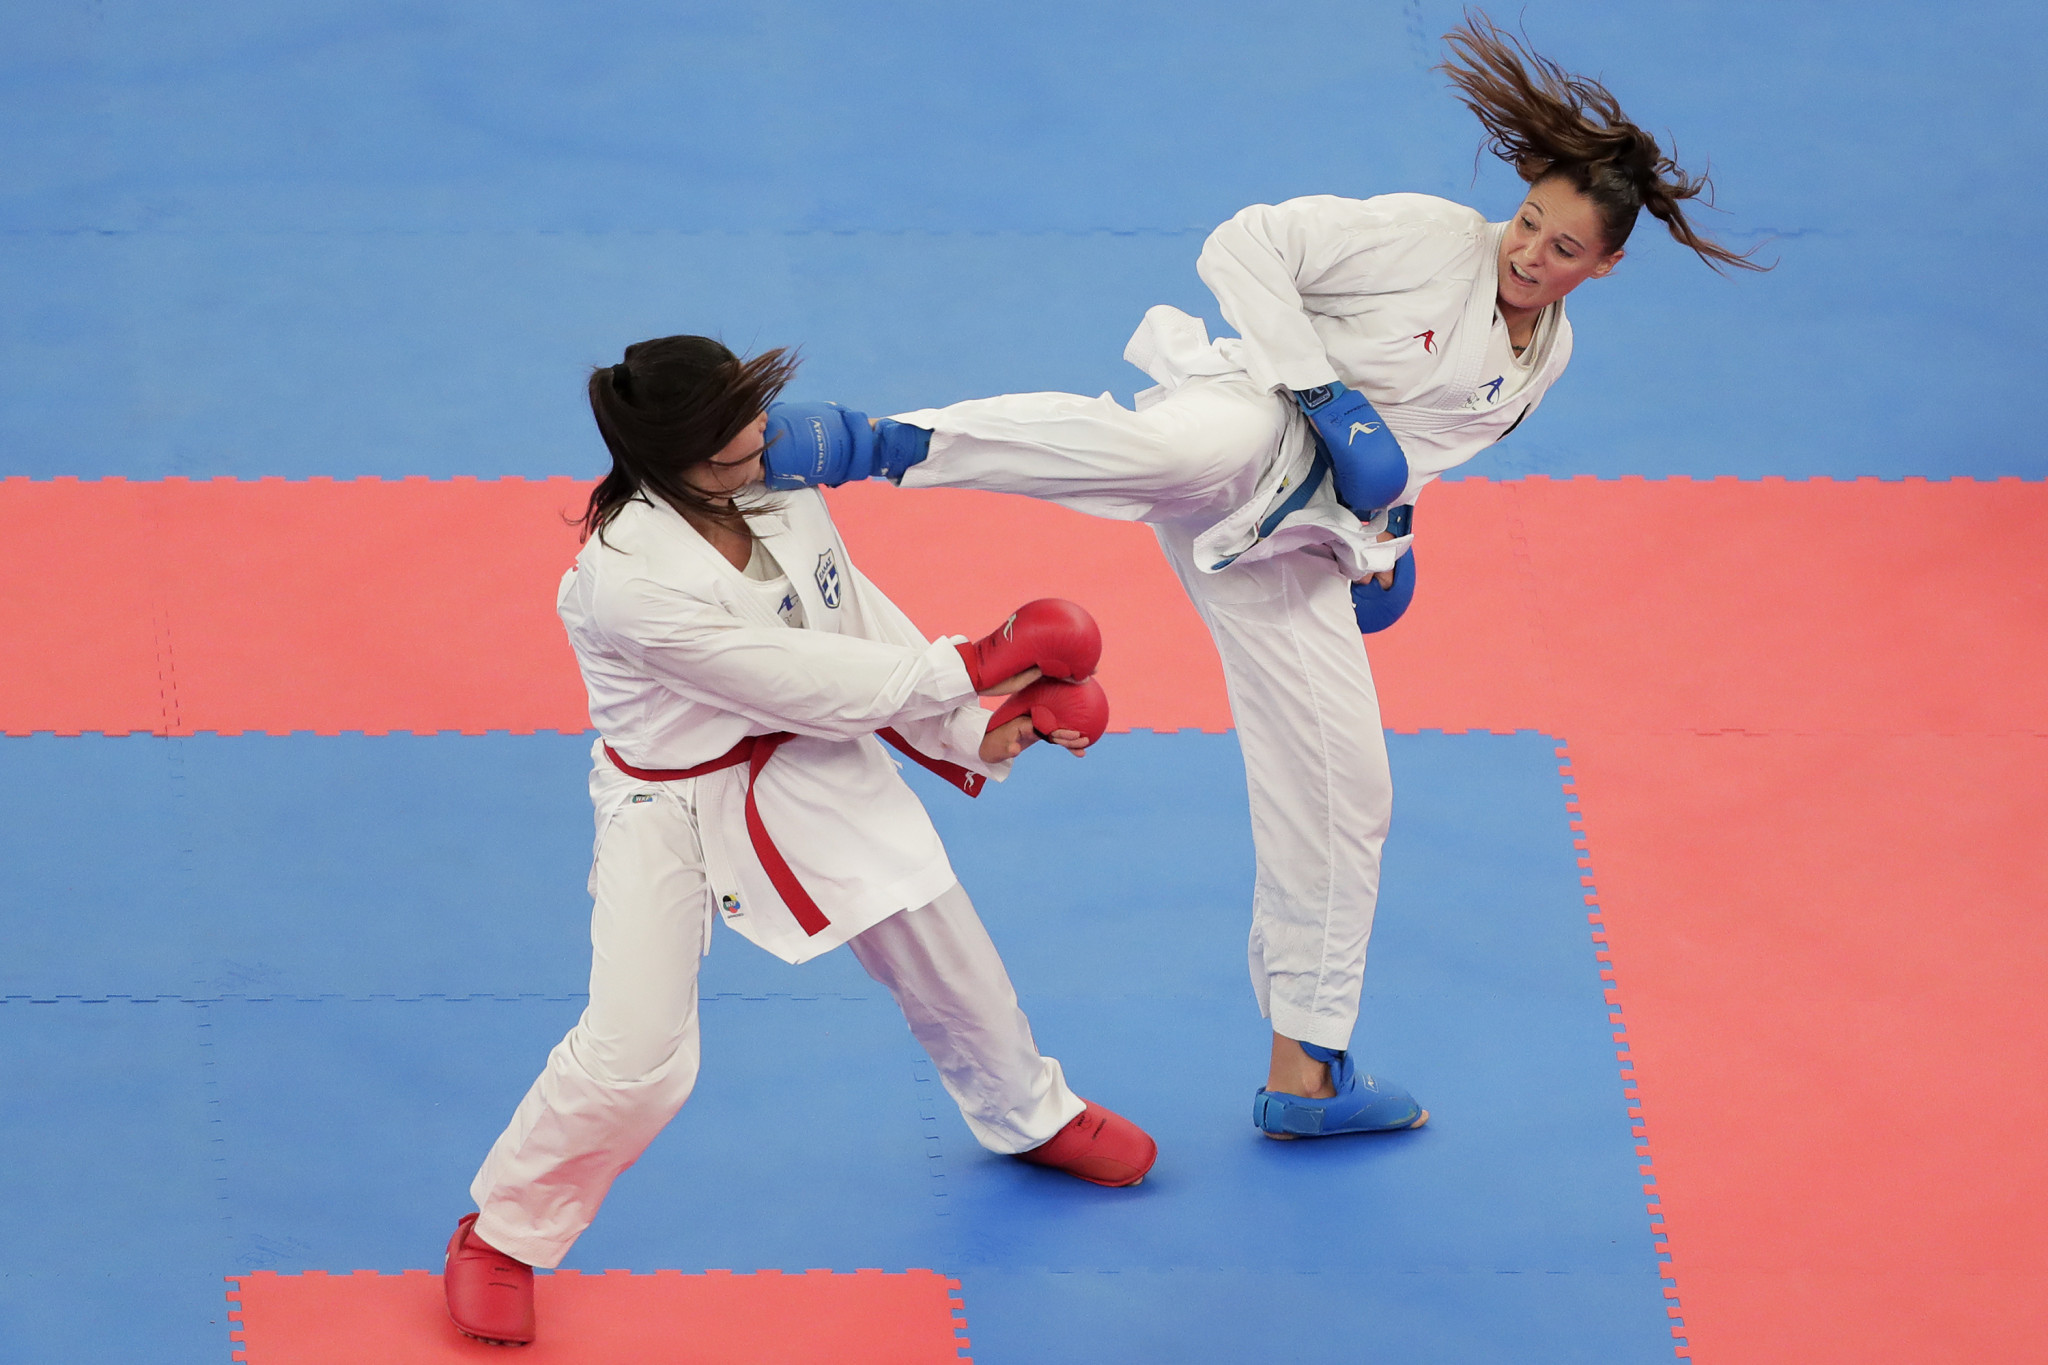 Karate is due to make its Olympic debut at Tokyo 2020 ©Getty Images